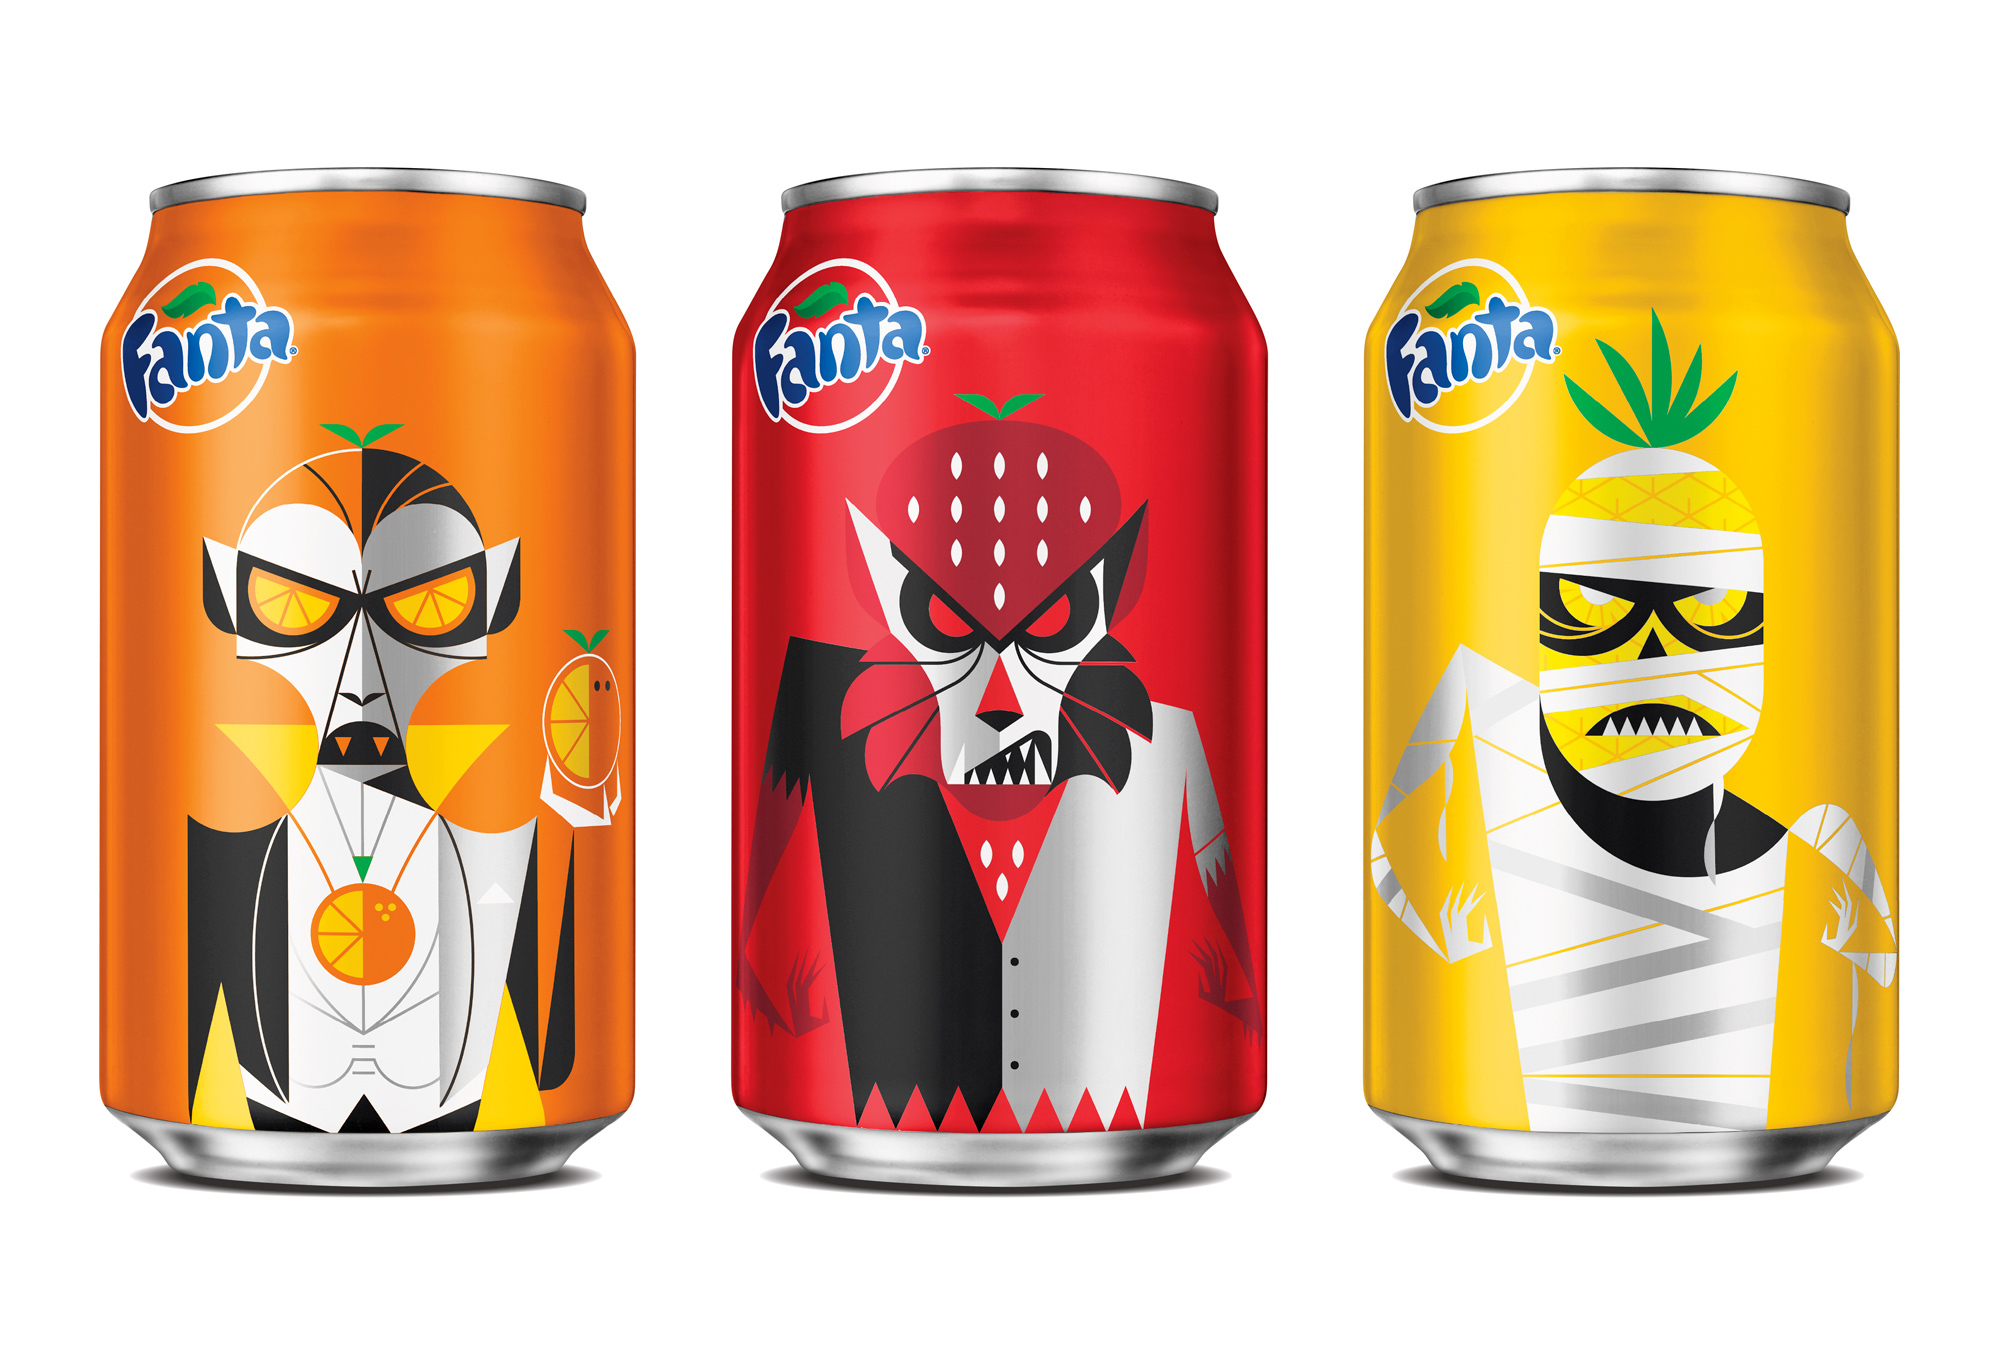 Fanta Halloween Cans 2020 Mattson Creative   Fanta Halloween Packaging